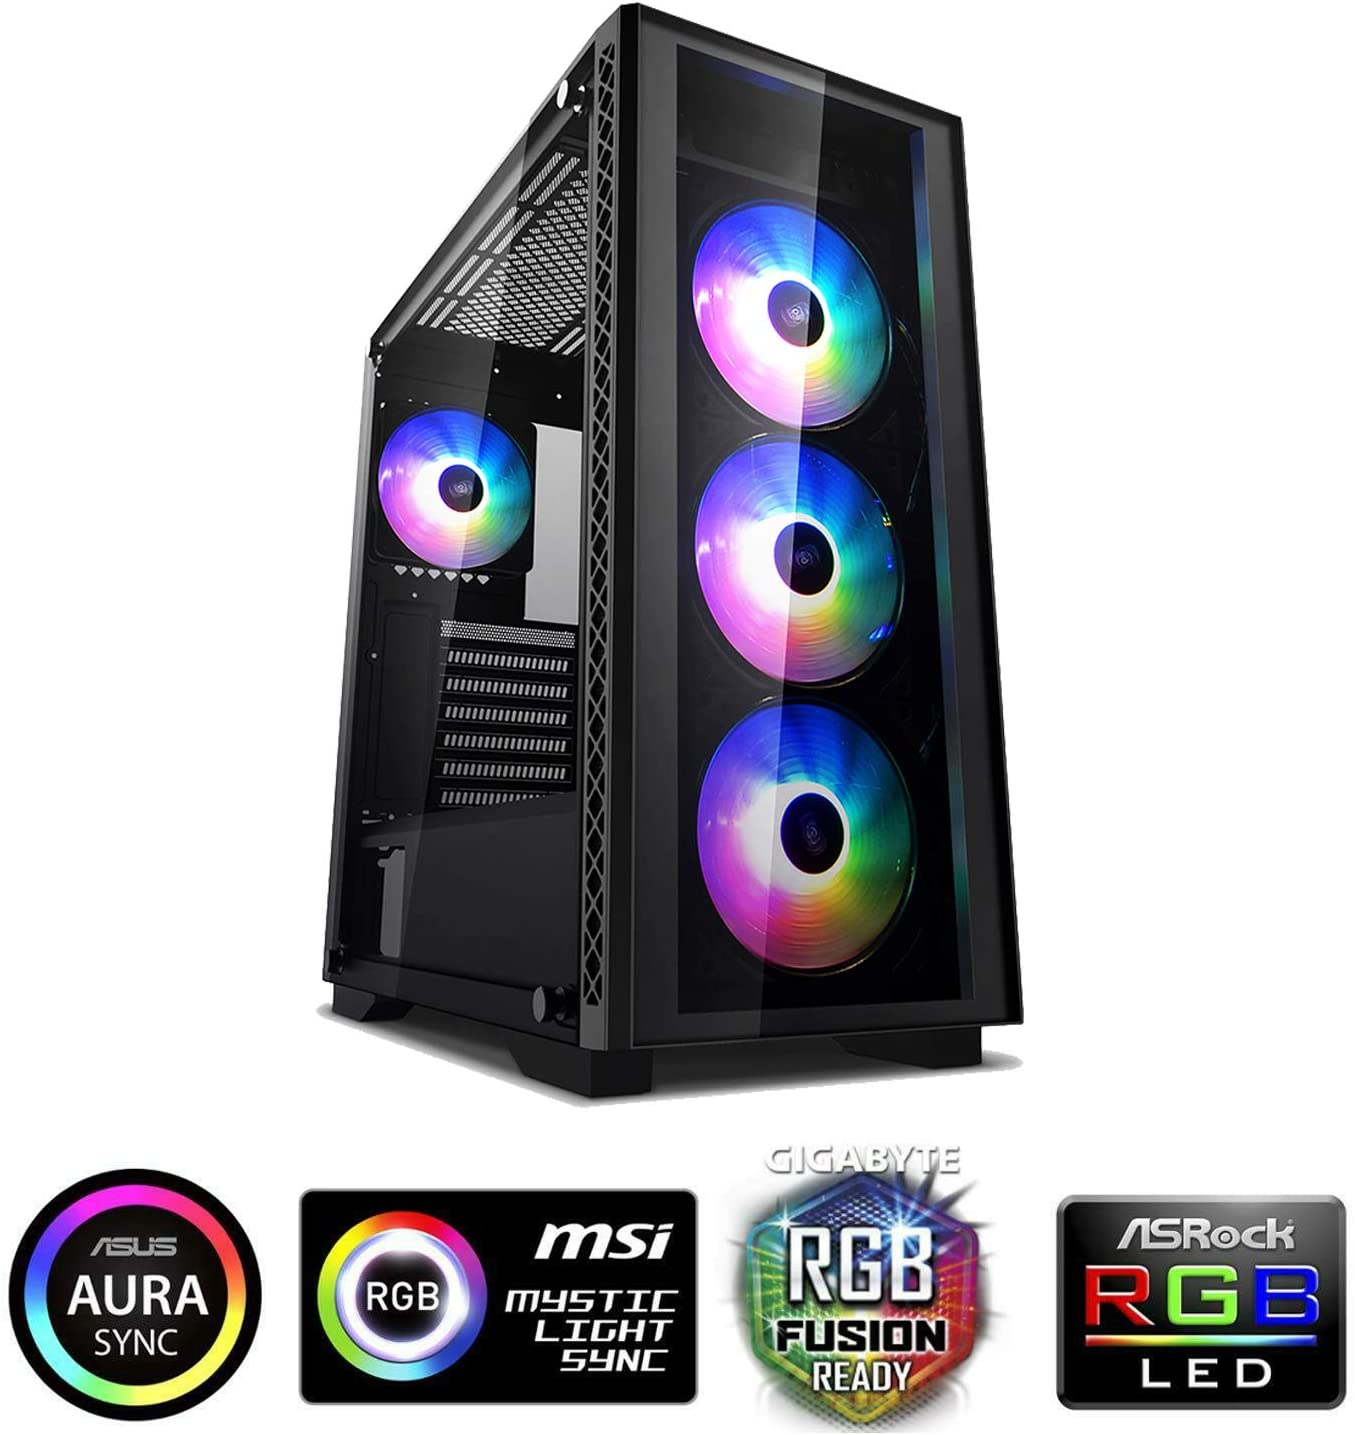 DeepCool Matrexx 50 Black Case ATX USB 3.0 PC Gaming 0,6 mm SPCC con 4 Ventiladores 120 mm PWM RGB Rainbow Addressable 5 V Add Panel Frontal y Lateral de Cristal Templado (AxPxL 479 x 442 x 210 mm)